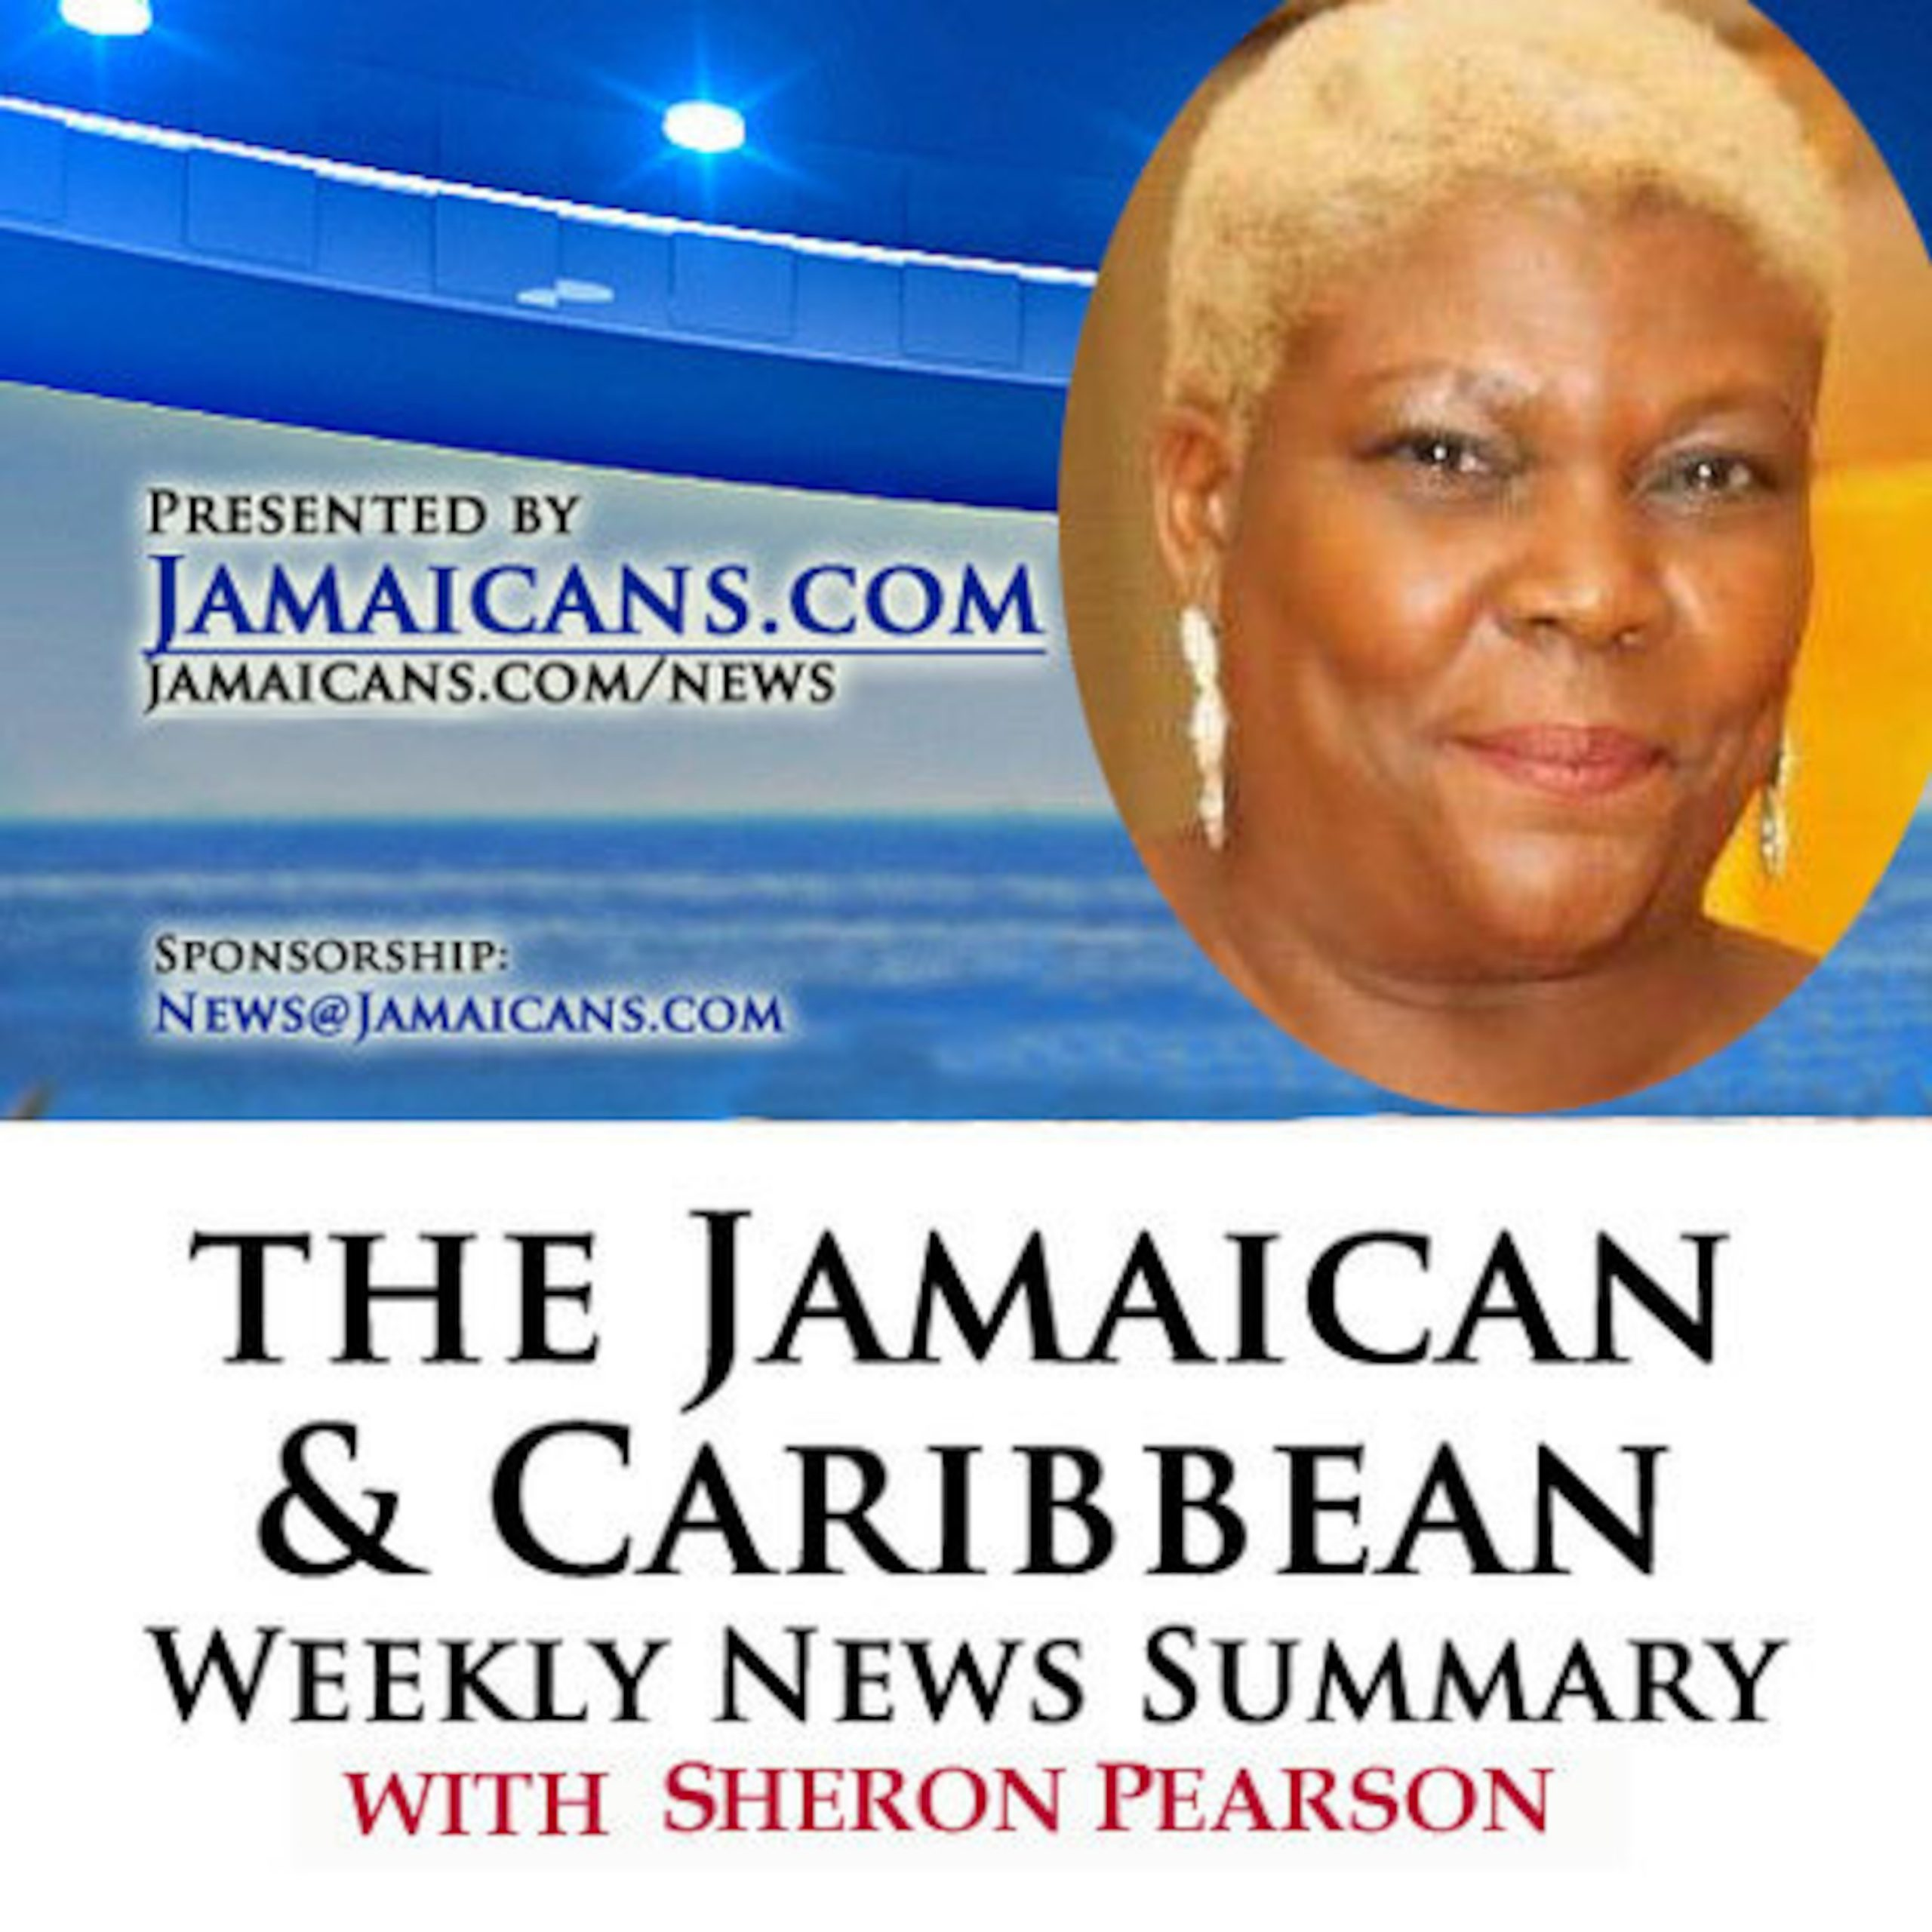 Listen to the Podcast of The Jamaica & Caribbean Weekly News Summary for the week ending April 24, 2020